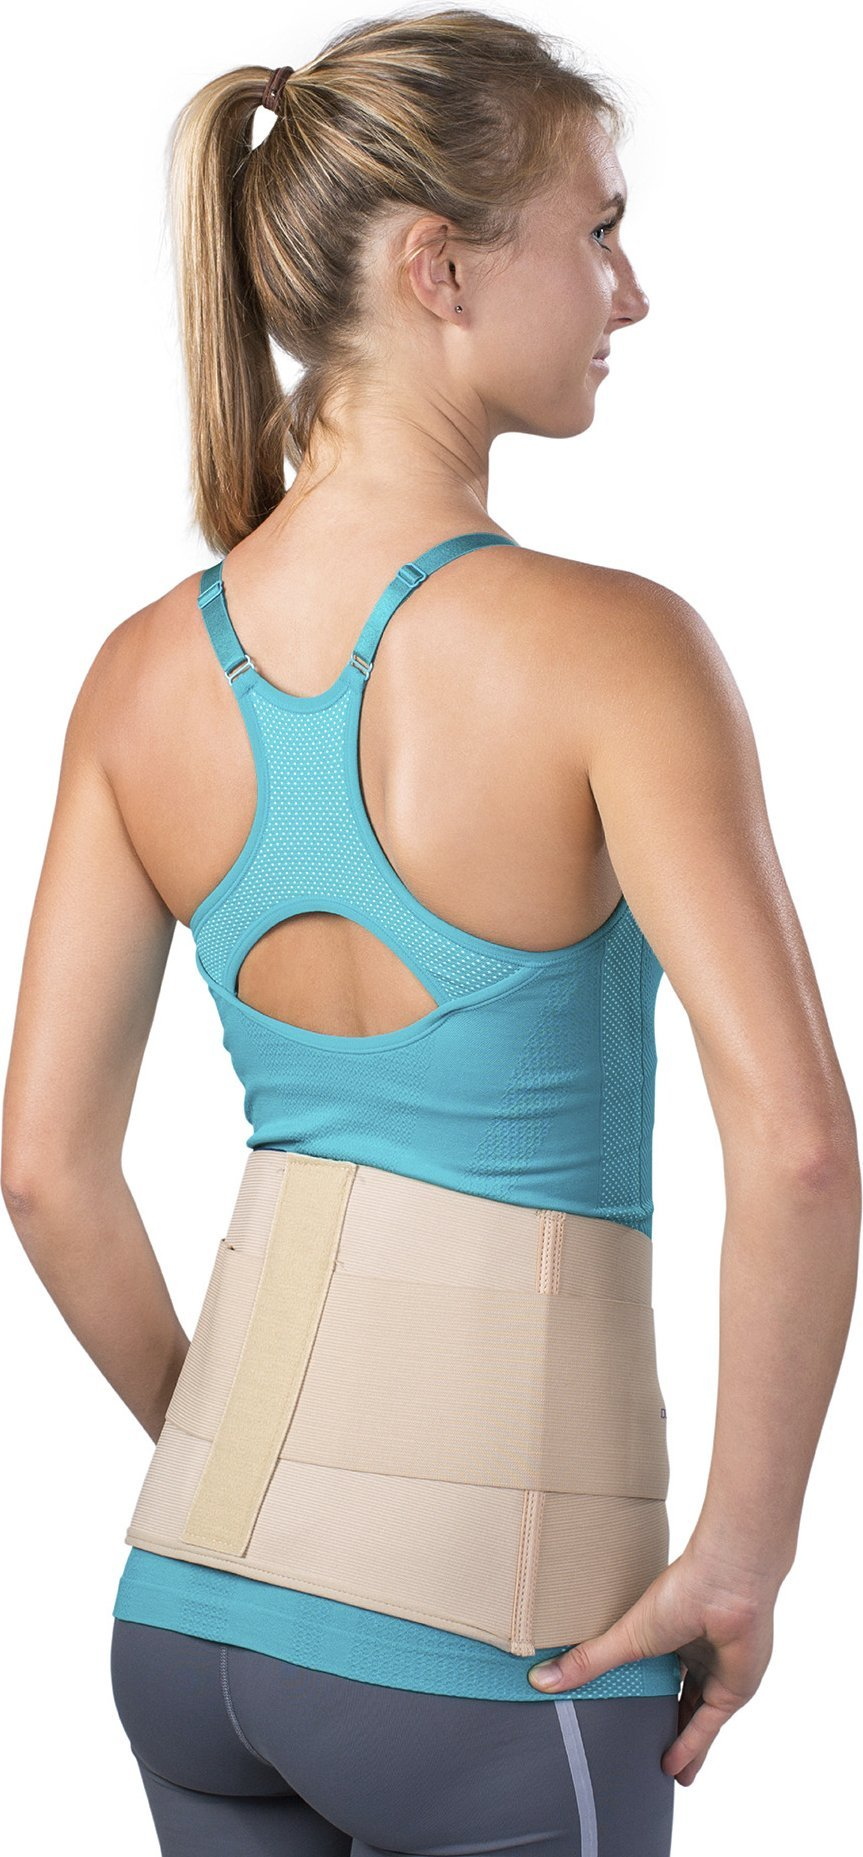 DonJoy Elastic Wrap-Around Lumbar Back Support Brace, X-Small (Waist: 18'' - 24'') by DonJoy